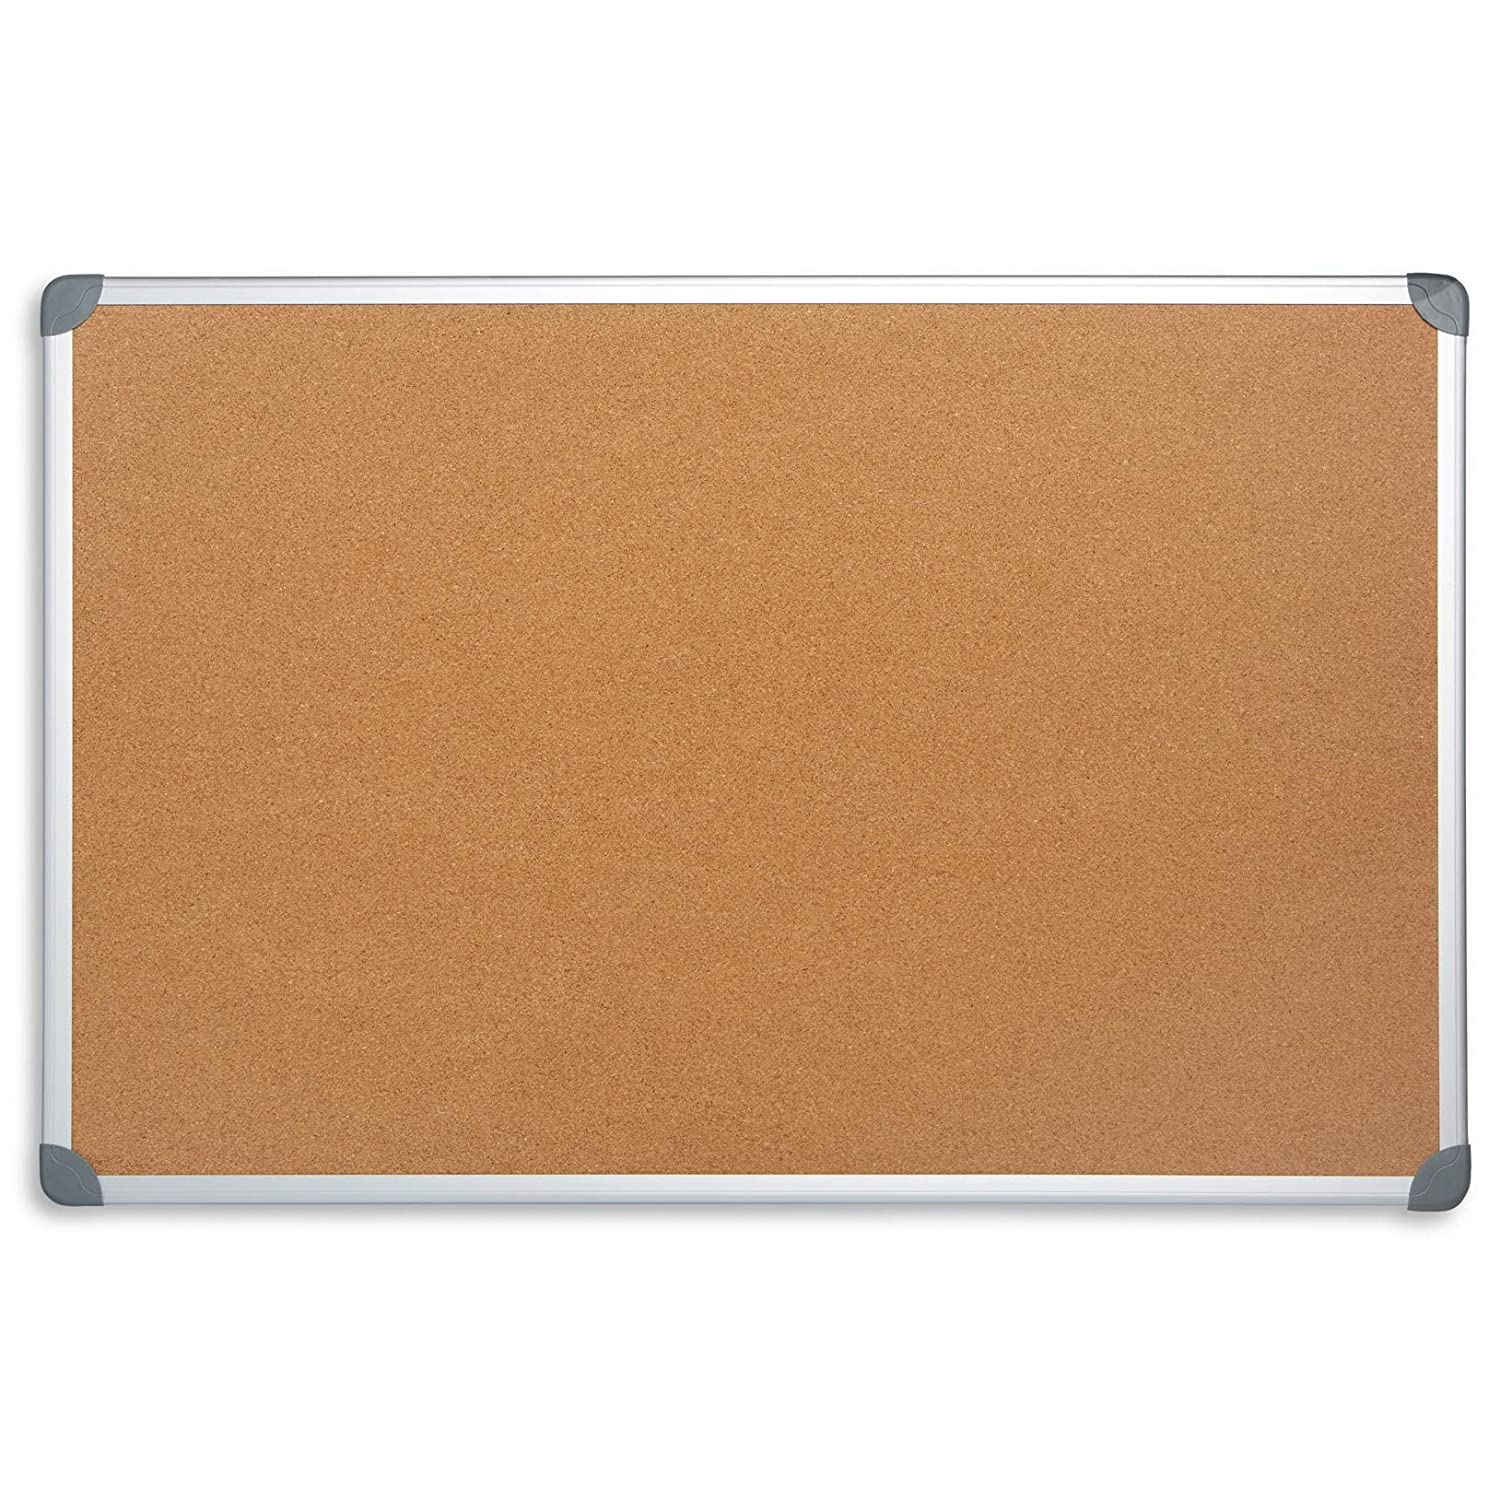 "Blue Summit Supplies 24"" x 36"" Corkboard with Aluminum Frame, Bulletin Board with Included Push Pins for Office, Classroom, or Home, Mounting Hardware Included"